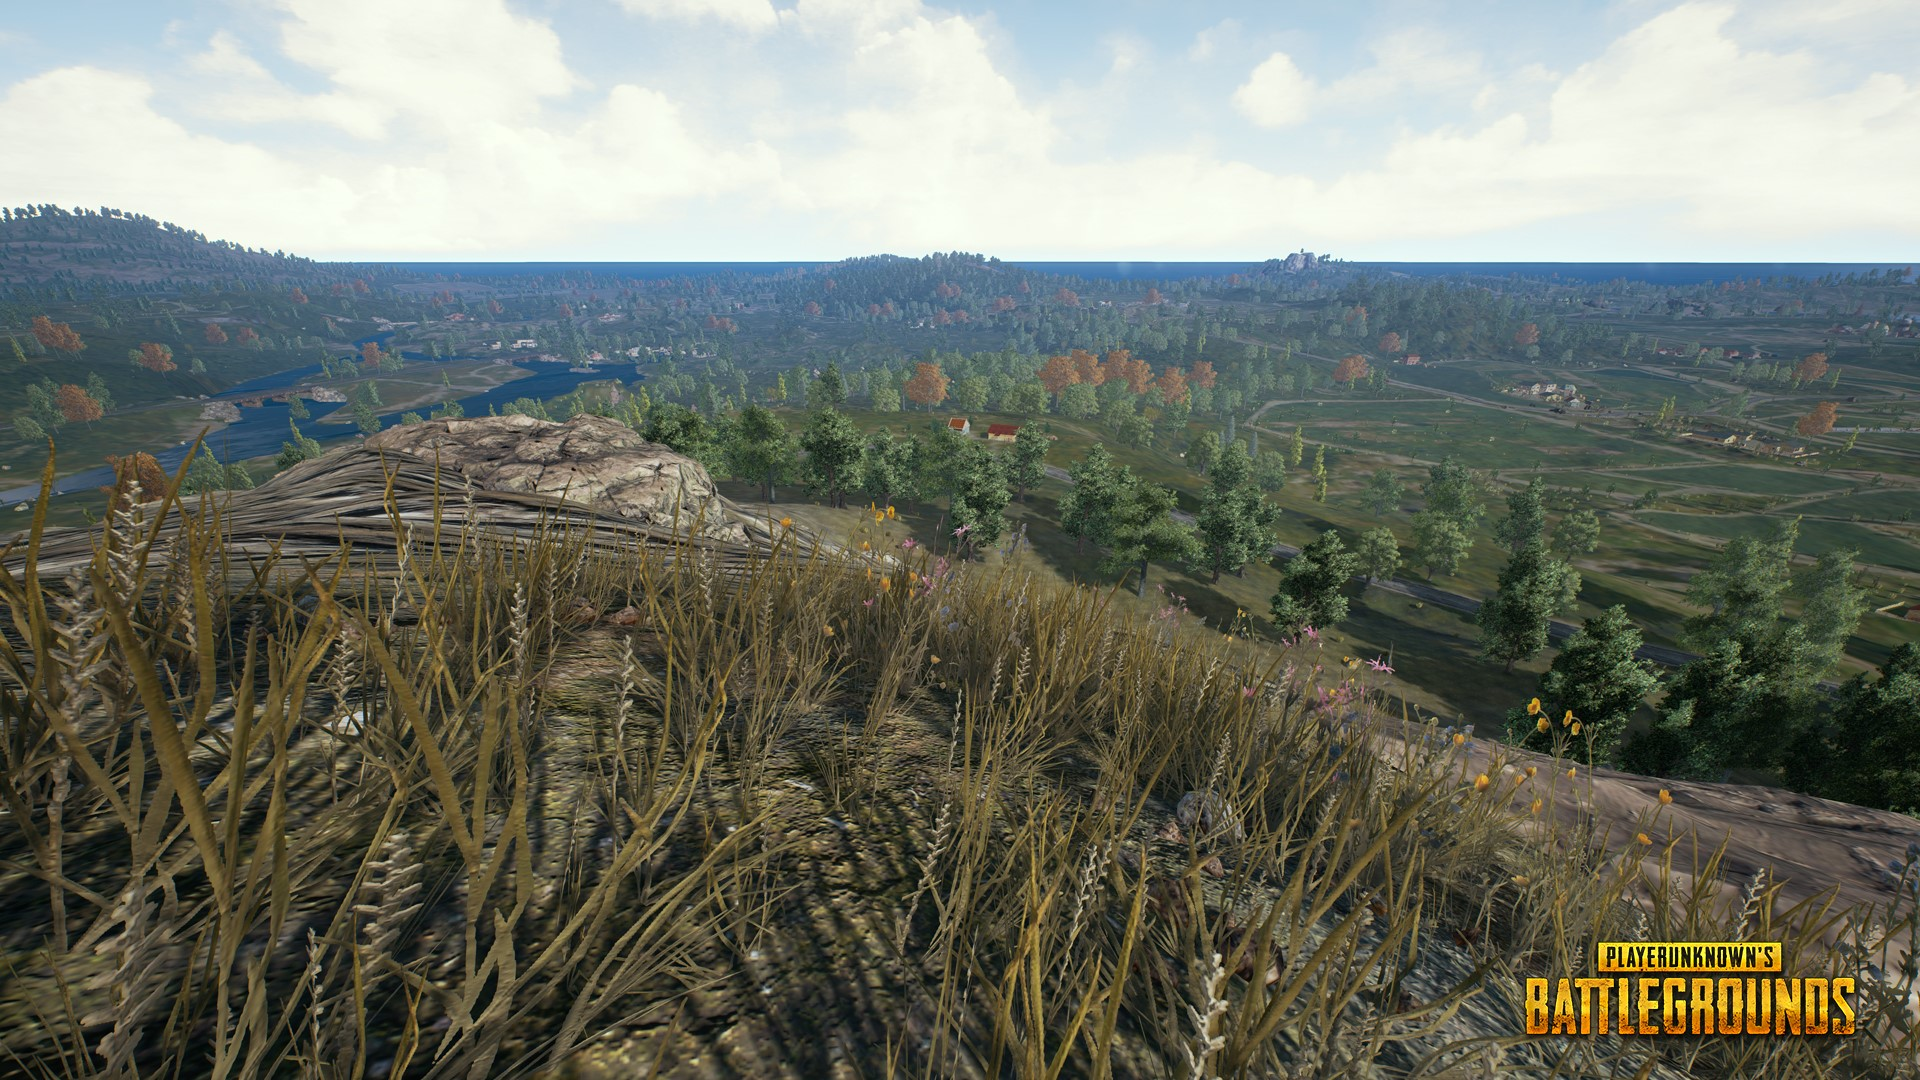 Playerunknown S Battlegrounds Pubg Wallpapers And Photos: PLAYERUNKNOWN'S BATTLEGROUNDS Backgrounds, Pictures, Images